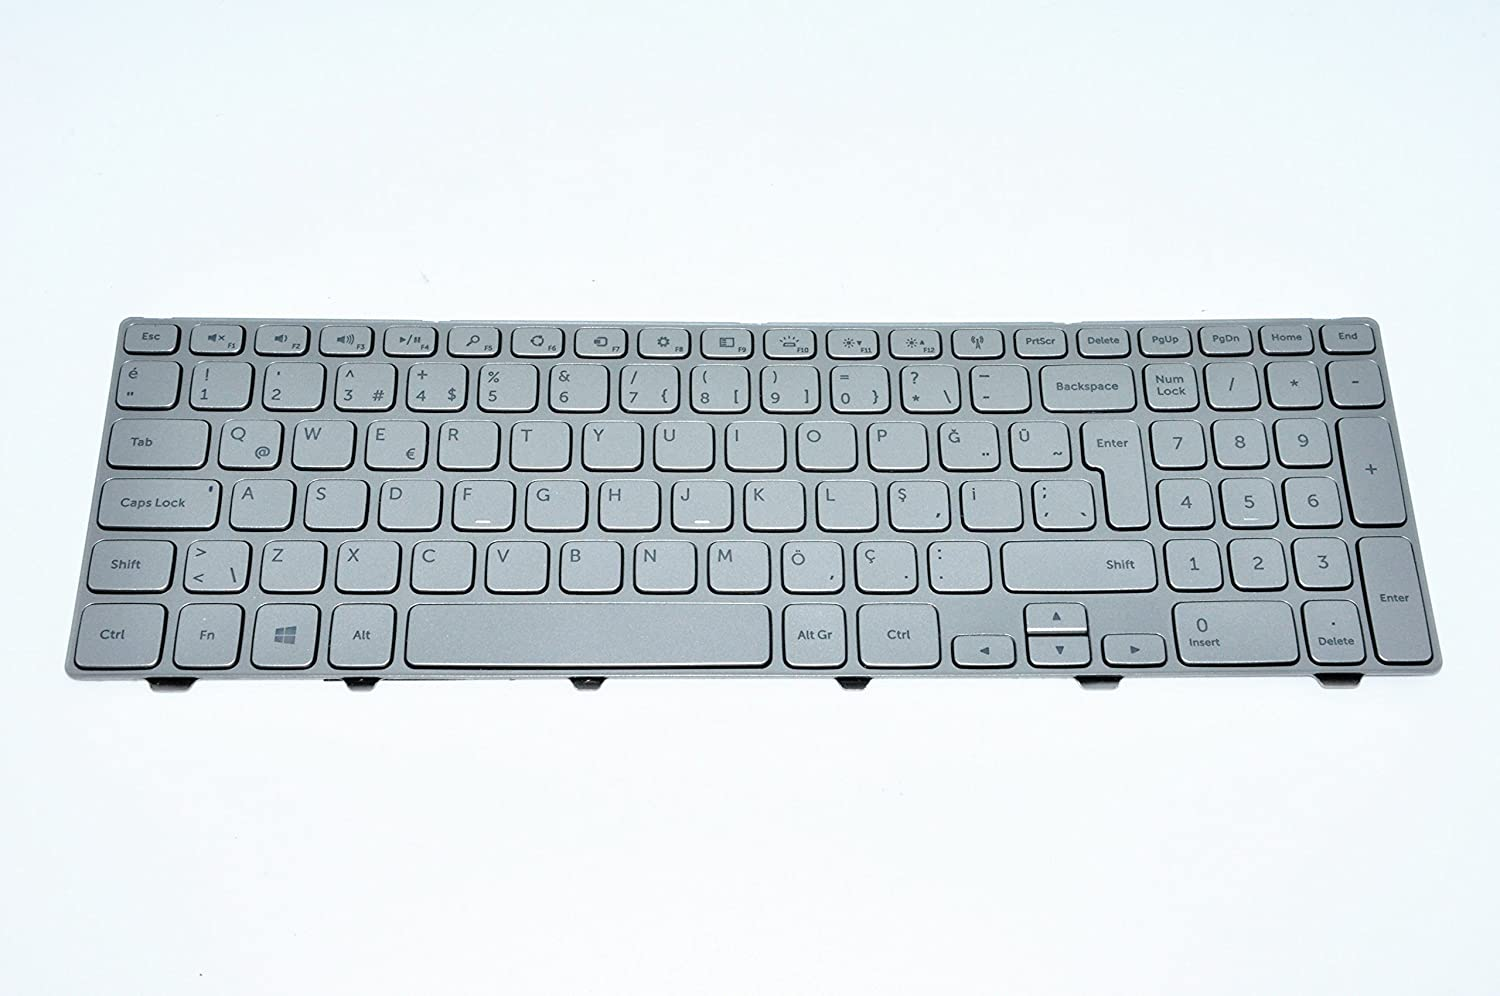 61ec43ede93 DELL INSPIRON 7537 TURKISH KEYBOARD G2D28: Amazon.co.uk: Computers &  Accessories